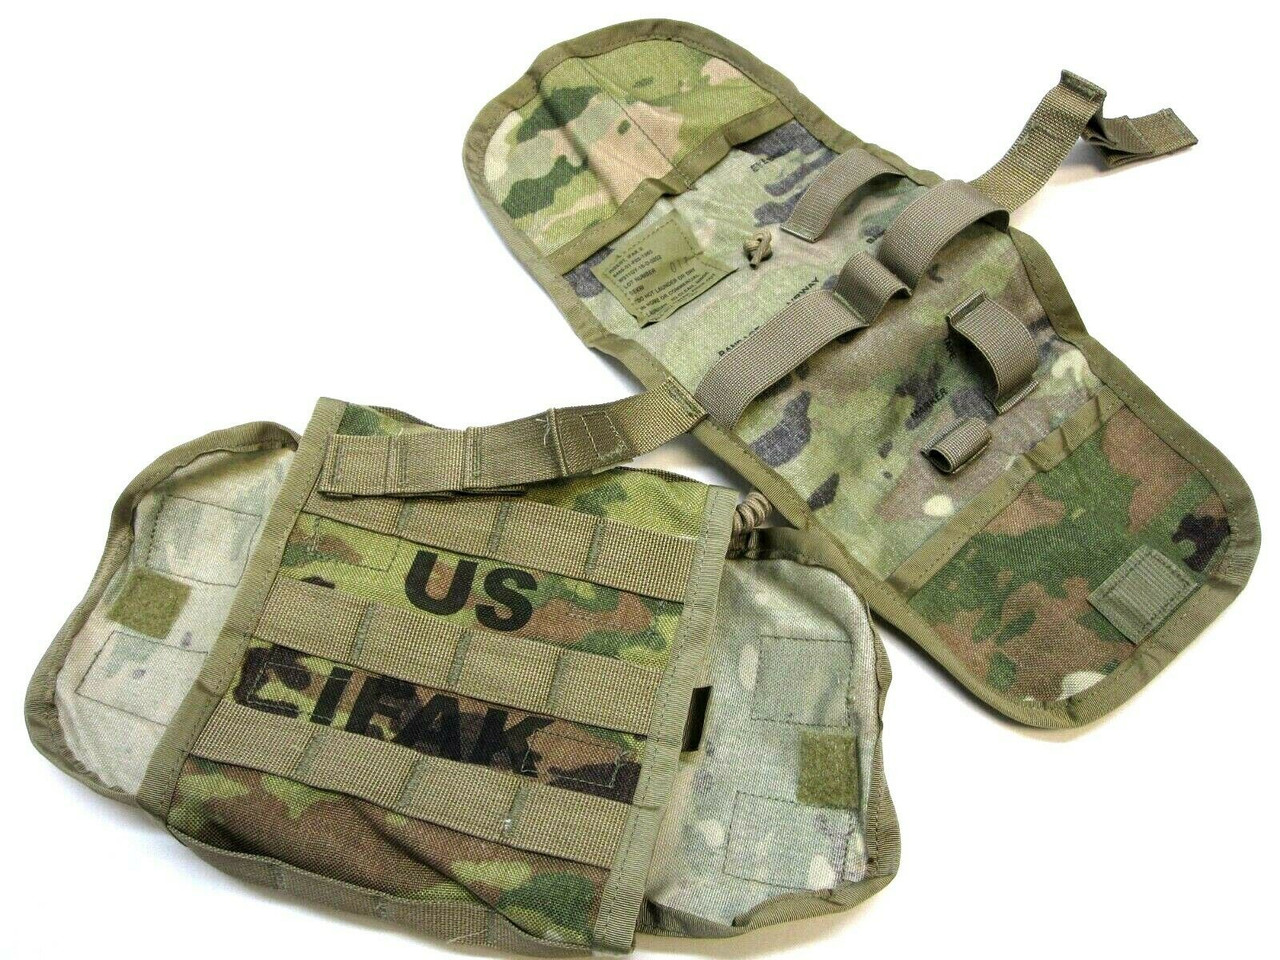 NEW ACU ARMY OCP IFAK II FIRST AID KIT MEDIC POUCH AND INSERT MULTICAM (EMPTY)